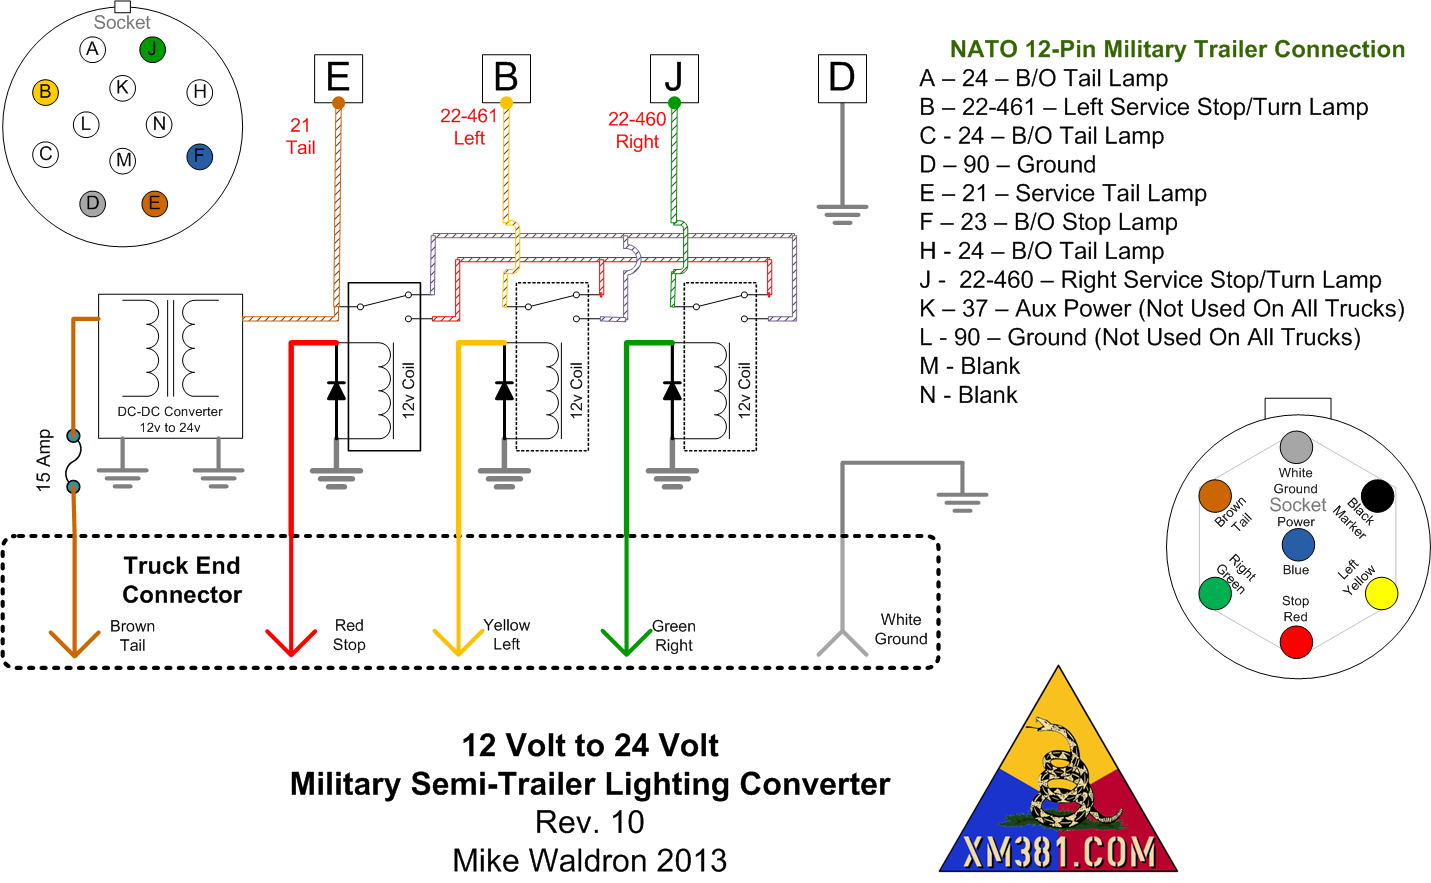 XM381 - 12 Volt Civllian Truck to 24 Volt Military Trailer Lighting on plug fuse, spark plugs diagram, plug connector, plug wire, plug safety, 7 rv plug diagram, plug switch, plug lighting diagram, 6.2 glow plug controller diagram, network diagram, 12 volt latching relay diagram, trailer light plug diagram, chevy 305 firing order diagram, plug socket diagram, plug valve, fuel line diagram, wire light switch from outlet diagram, plug circuit breaker, power diagram, electrical plug diagram,